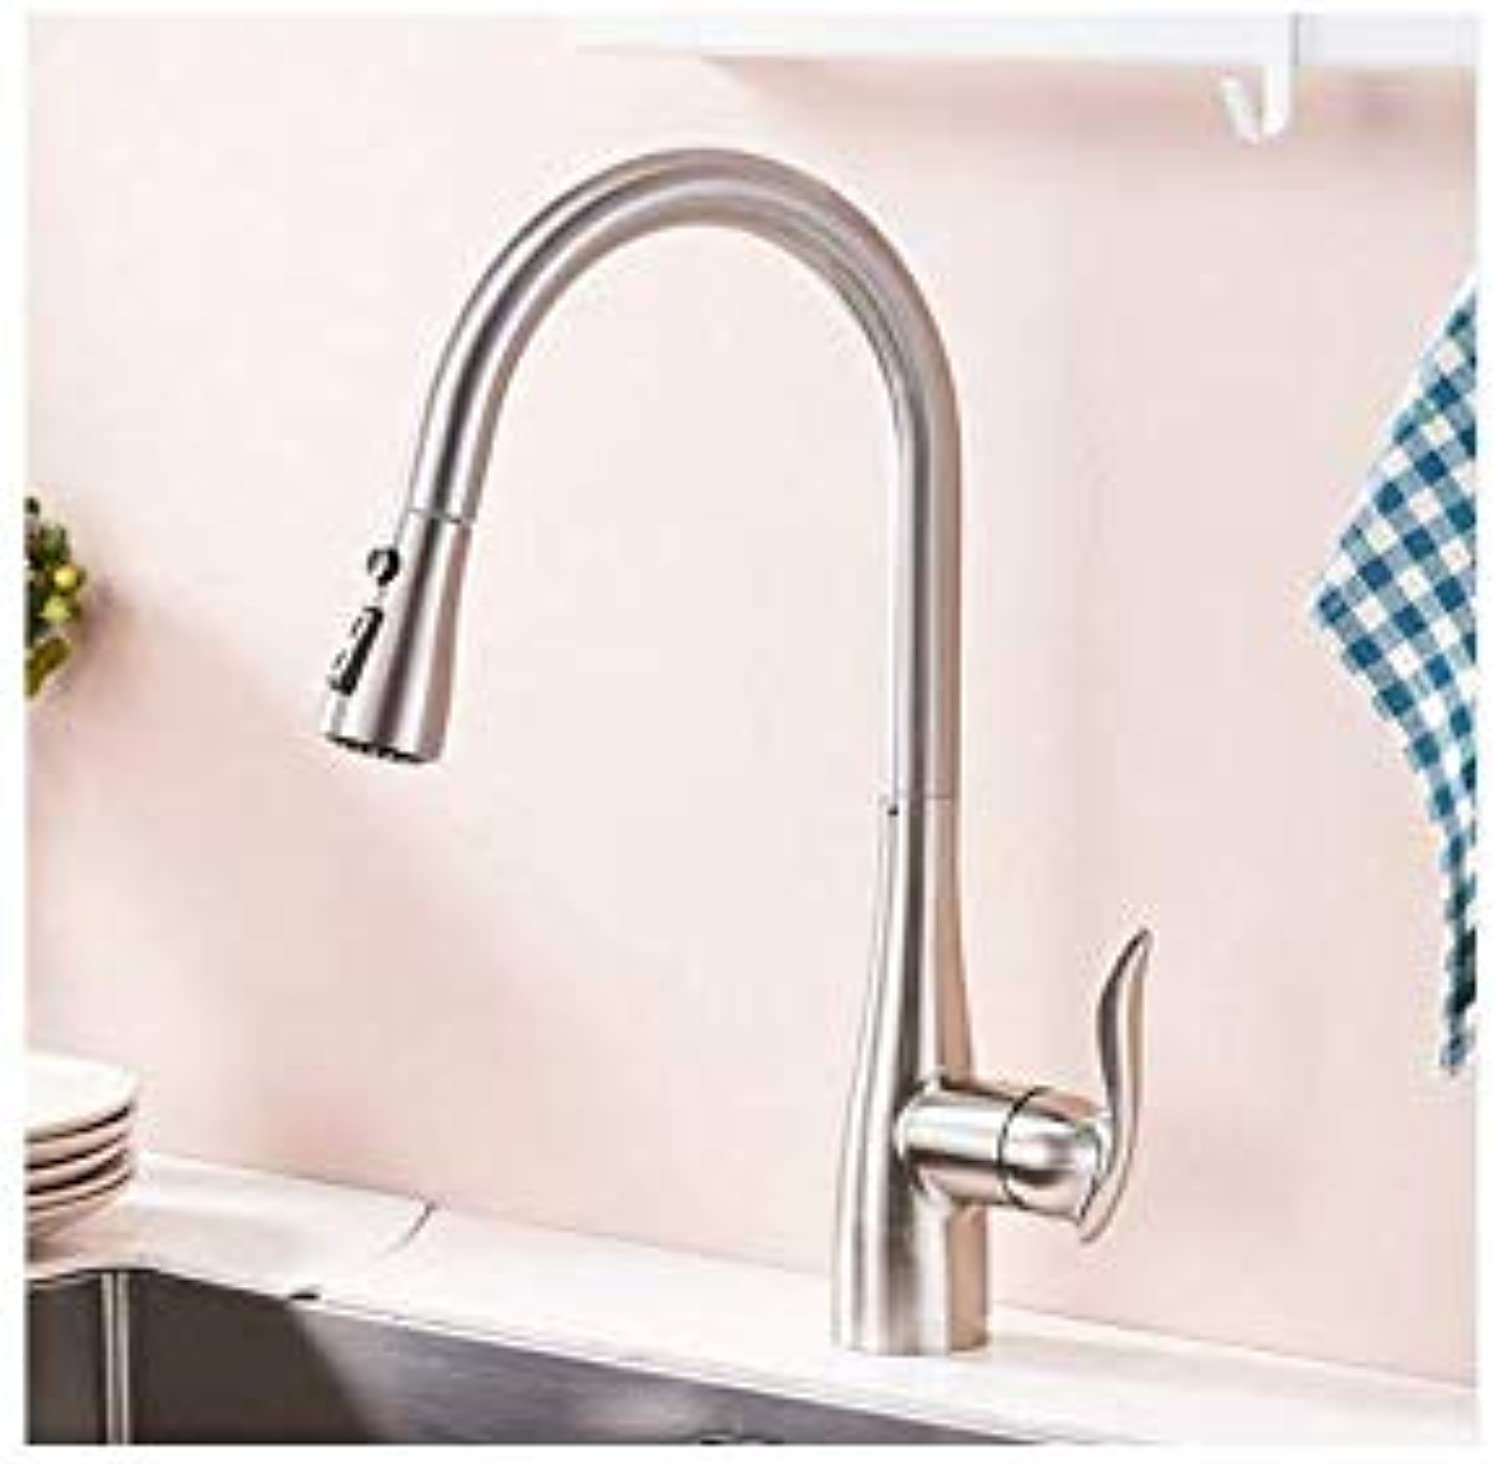 Brushed Nickel Kitchen Faucet Pull Down Out Kitchen Tap Single Handle Brass Faucets Cold and Hot Water Sink Mixer,A